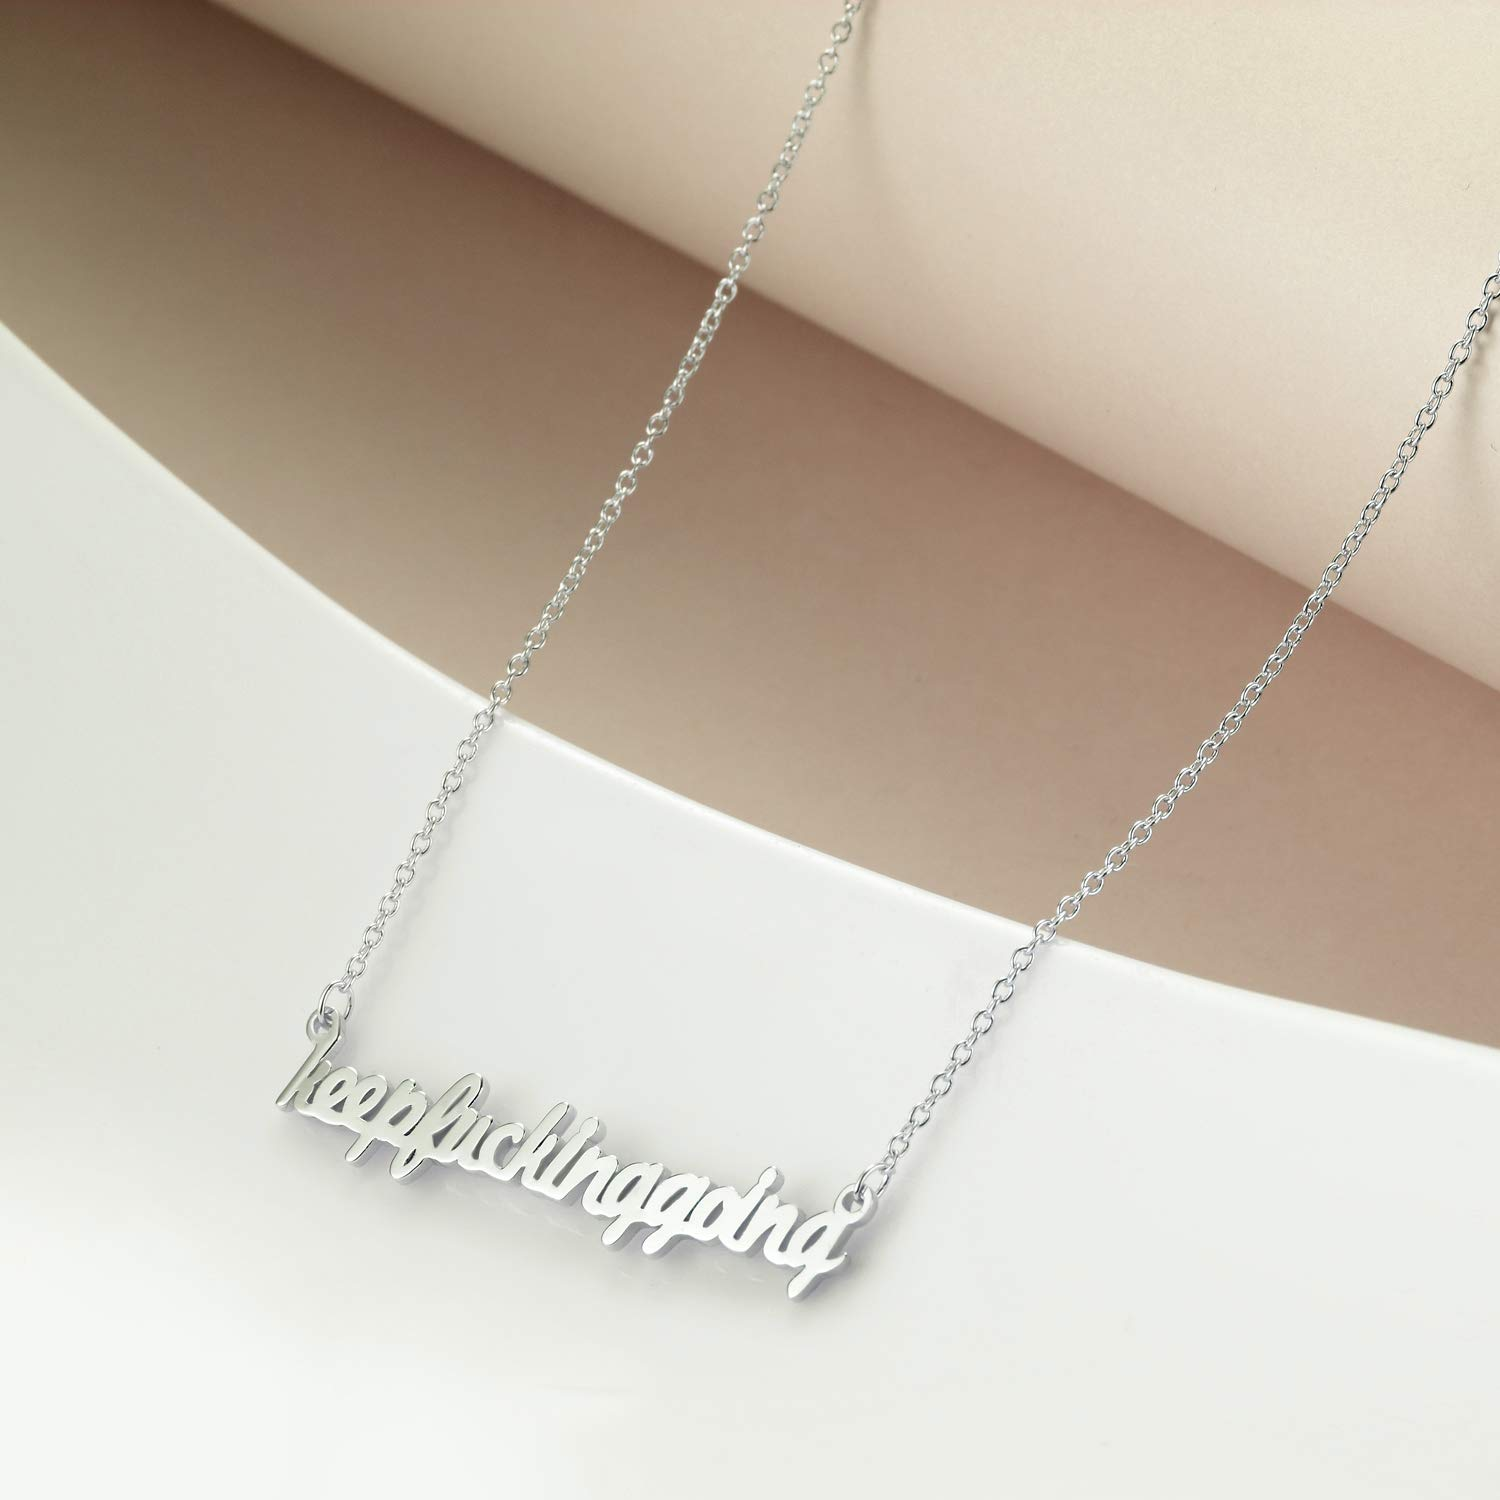 WINNICACA Inspiring Personalised Necklace Sterling Silver Brave Strong and Keep Going Pendant Jewelry Gifts for Women Teens Birthday